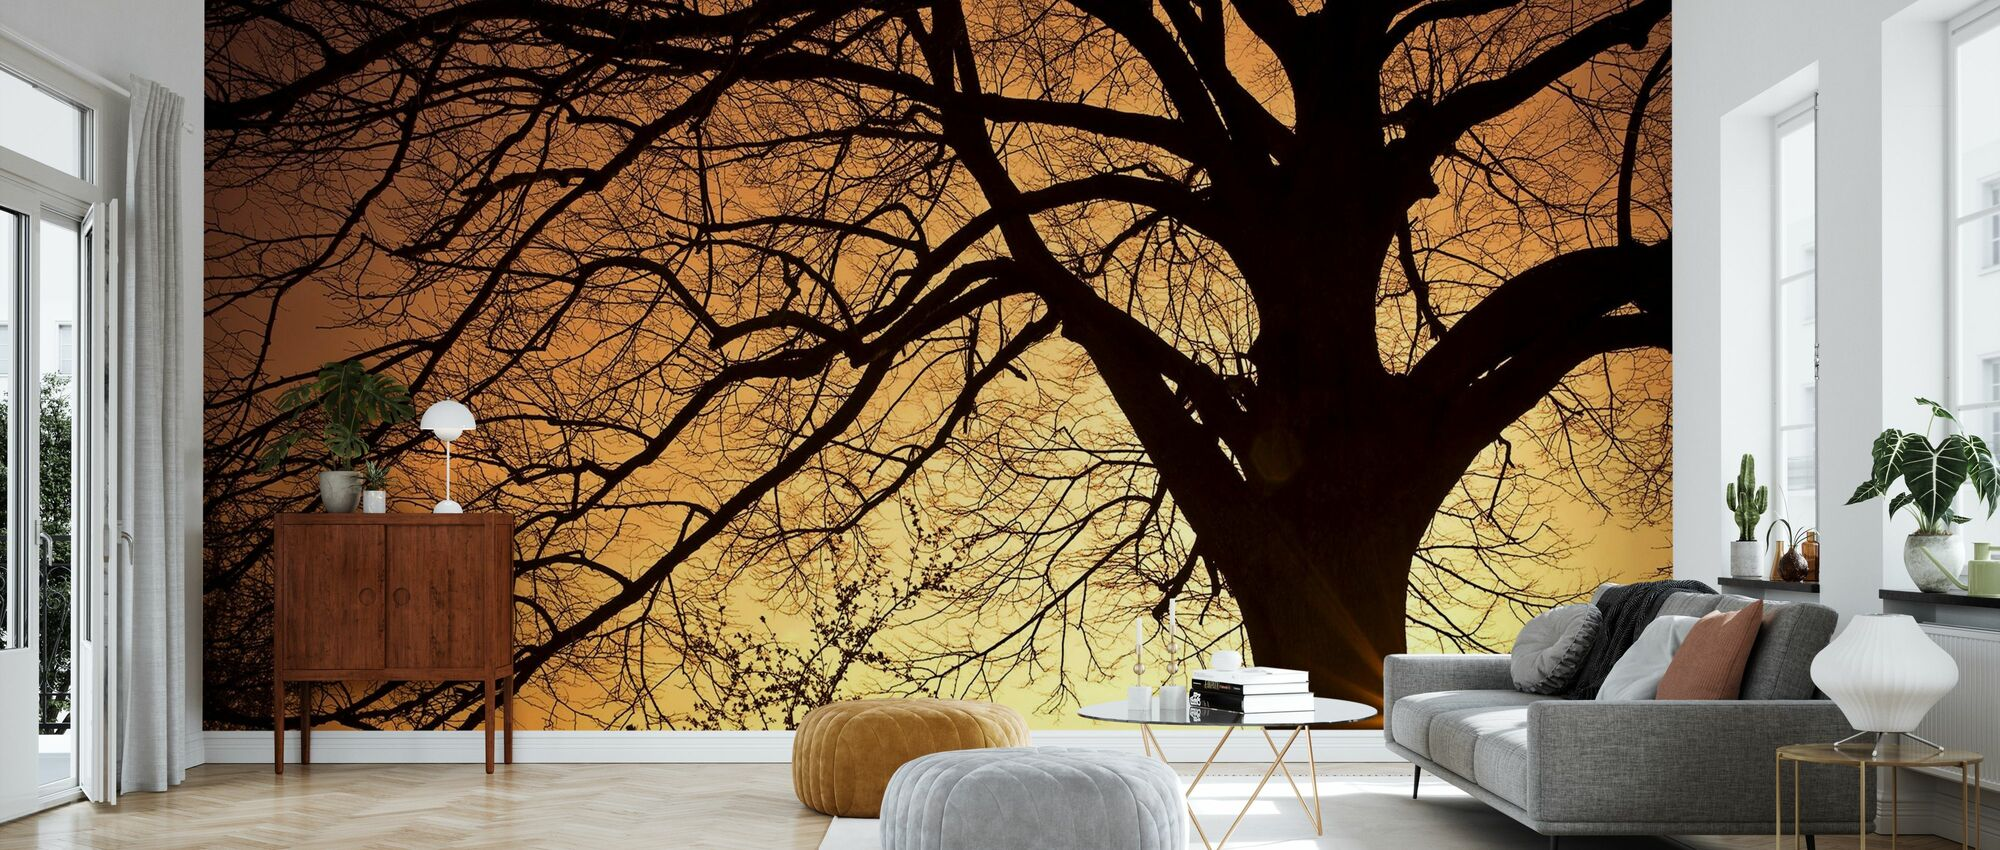 Silouette of a Willow Tree - Wallpaper - Living Room